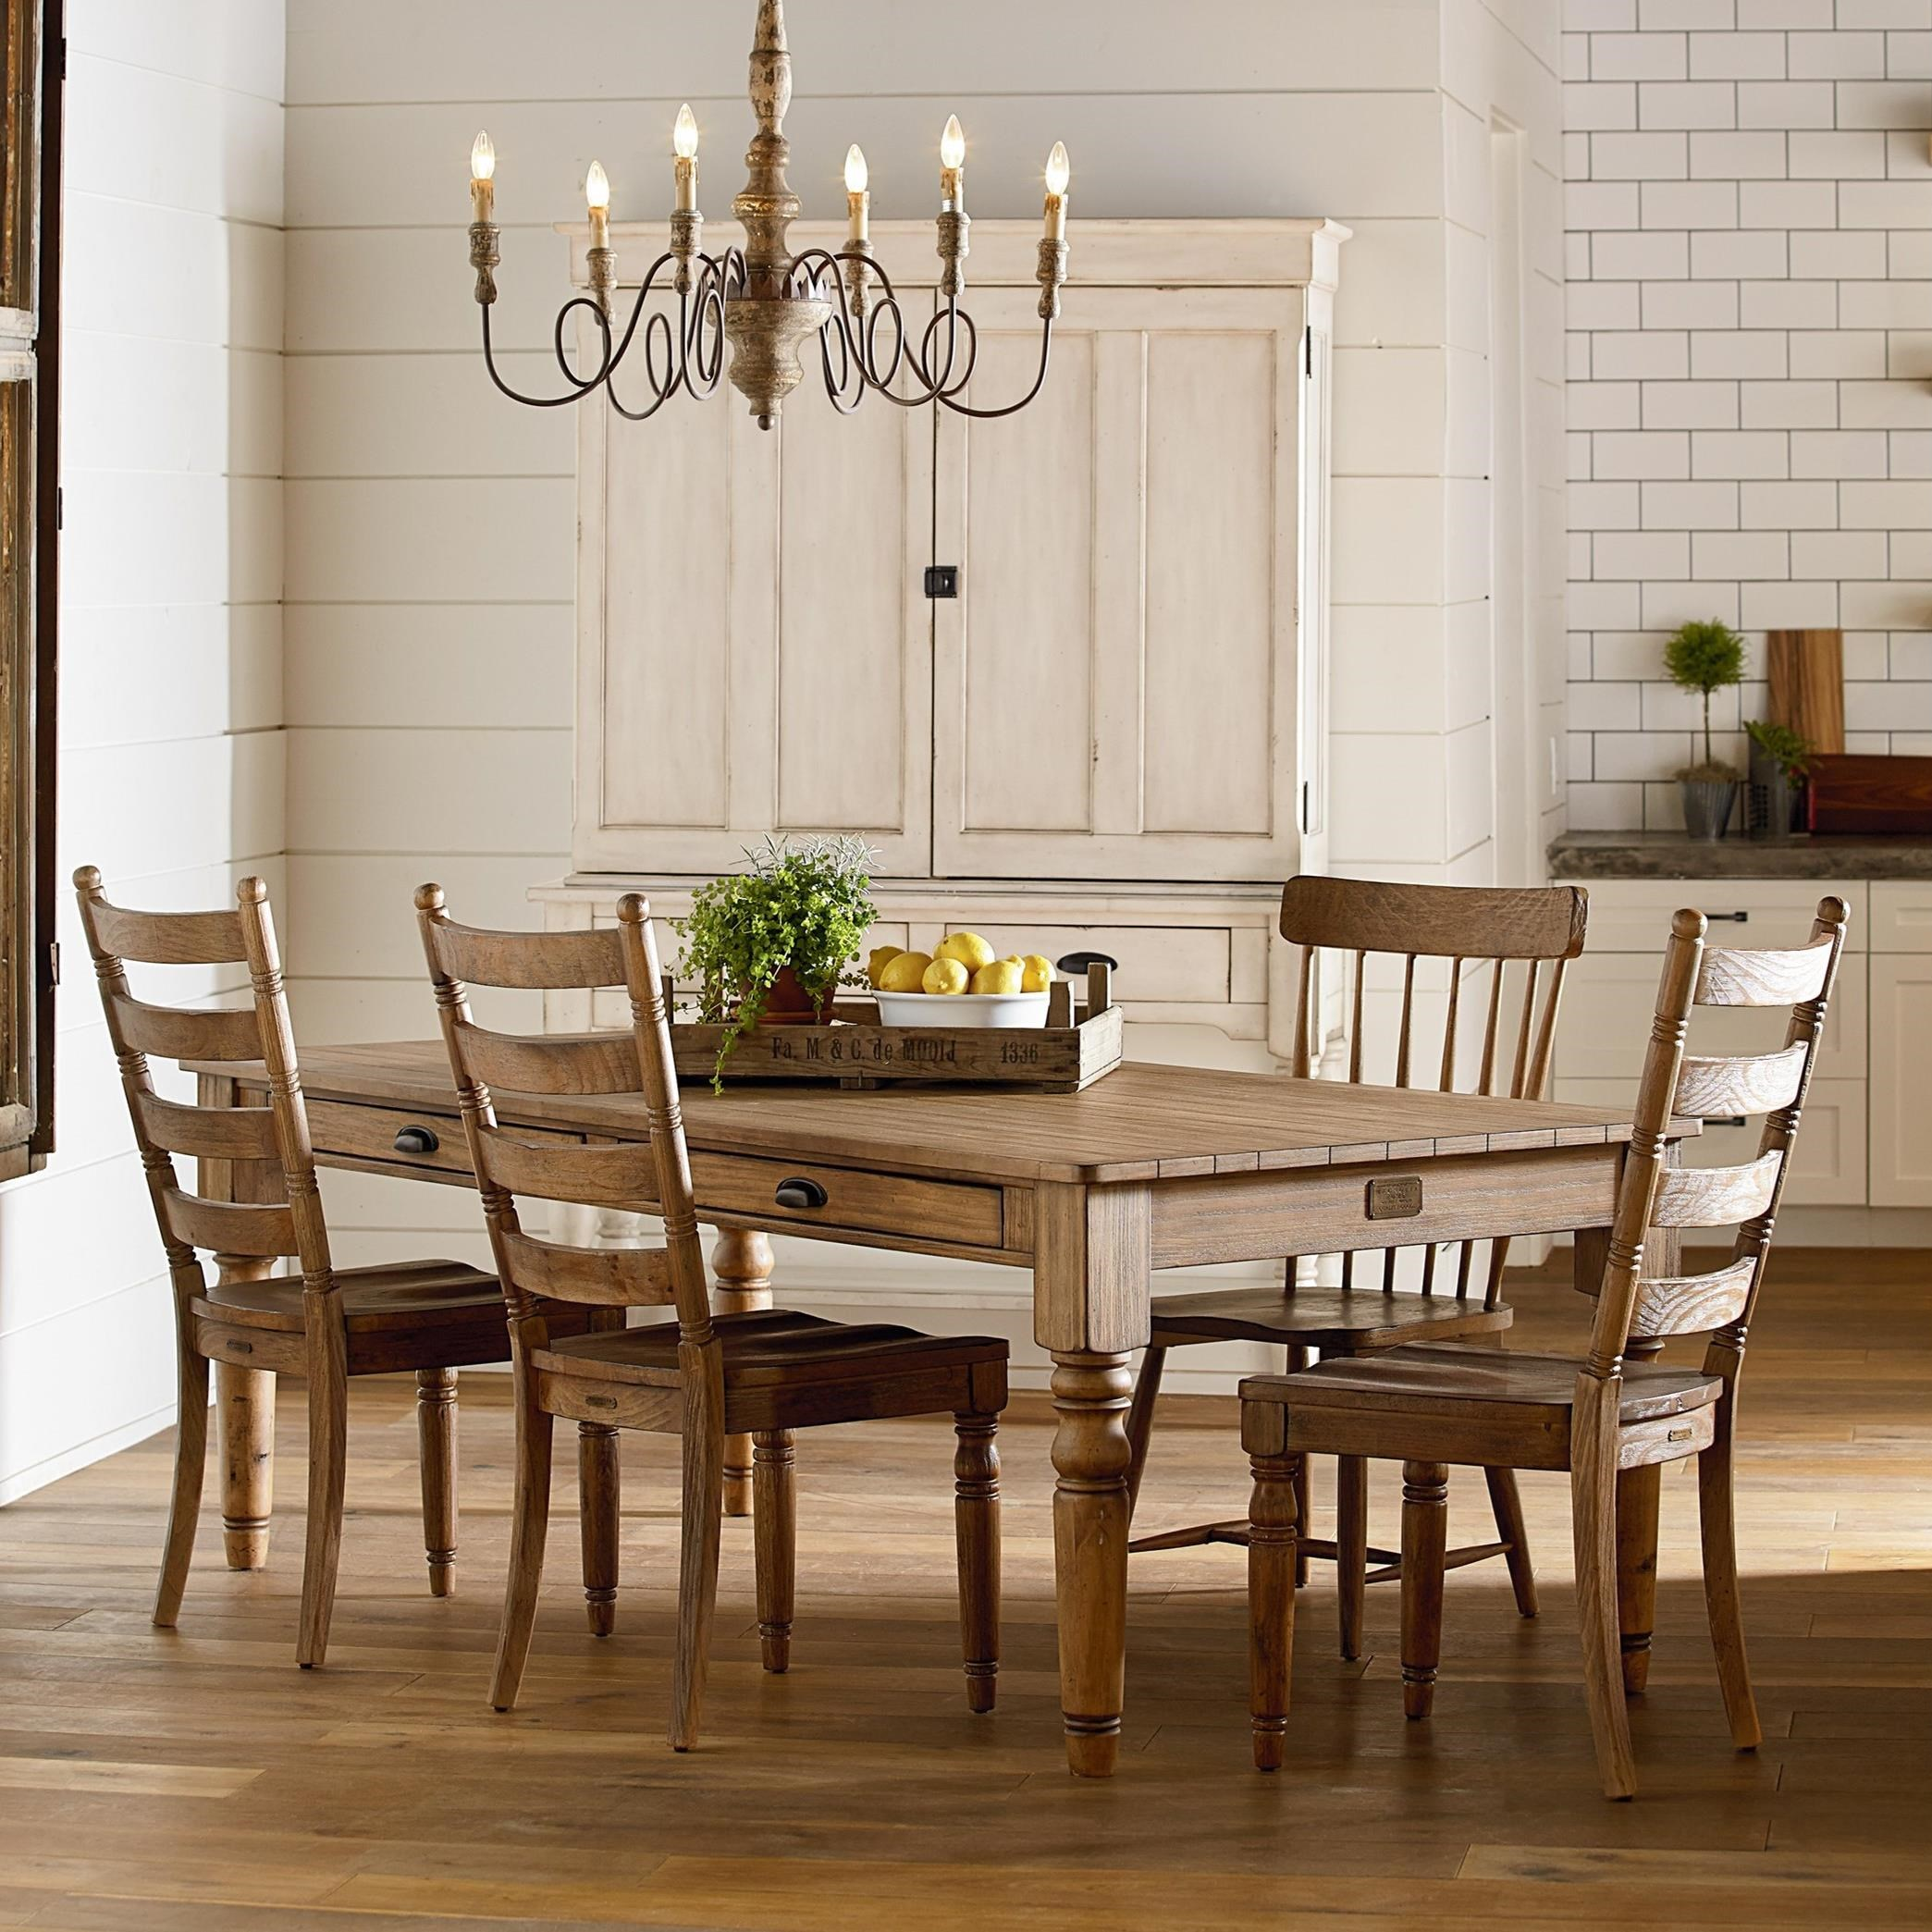 Dining Room Home: Primitive Dining Room Group By Magnolia Home By Joanna